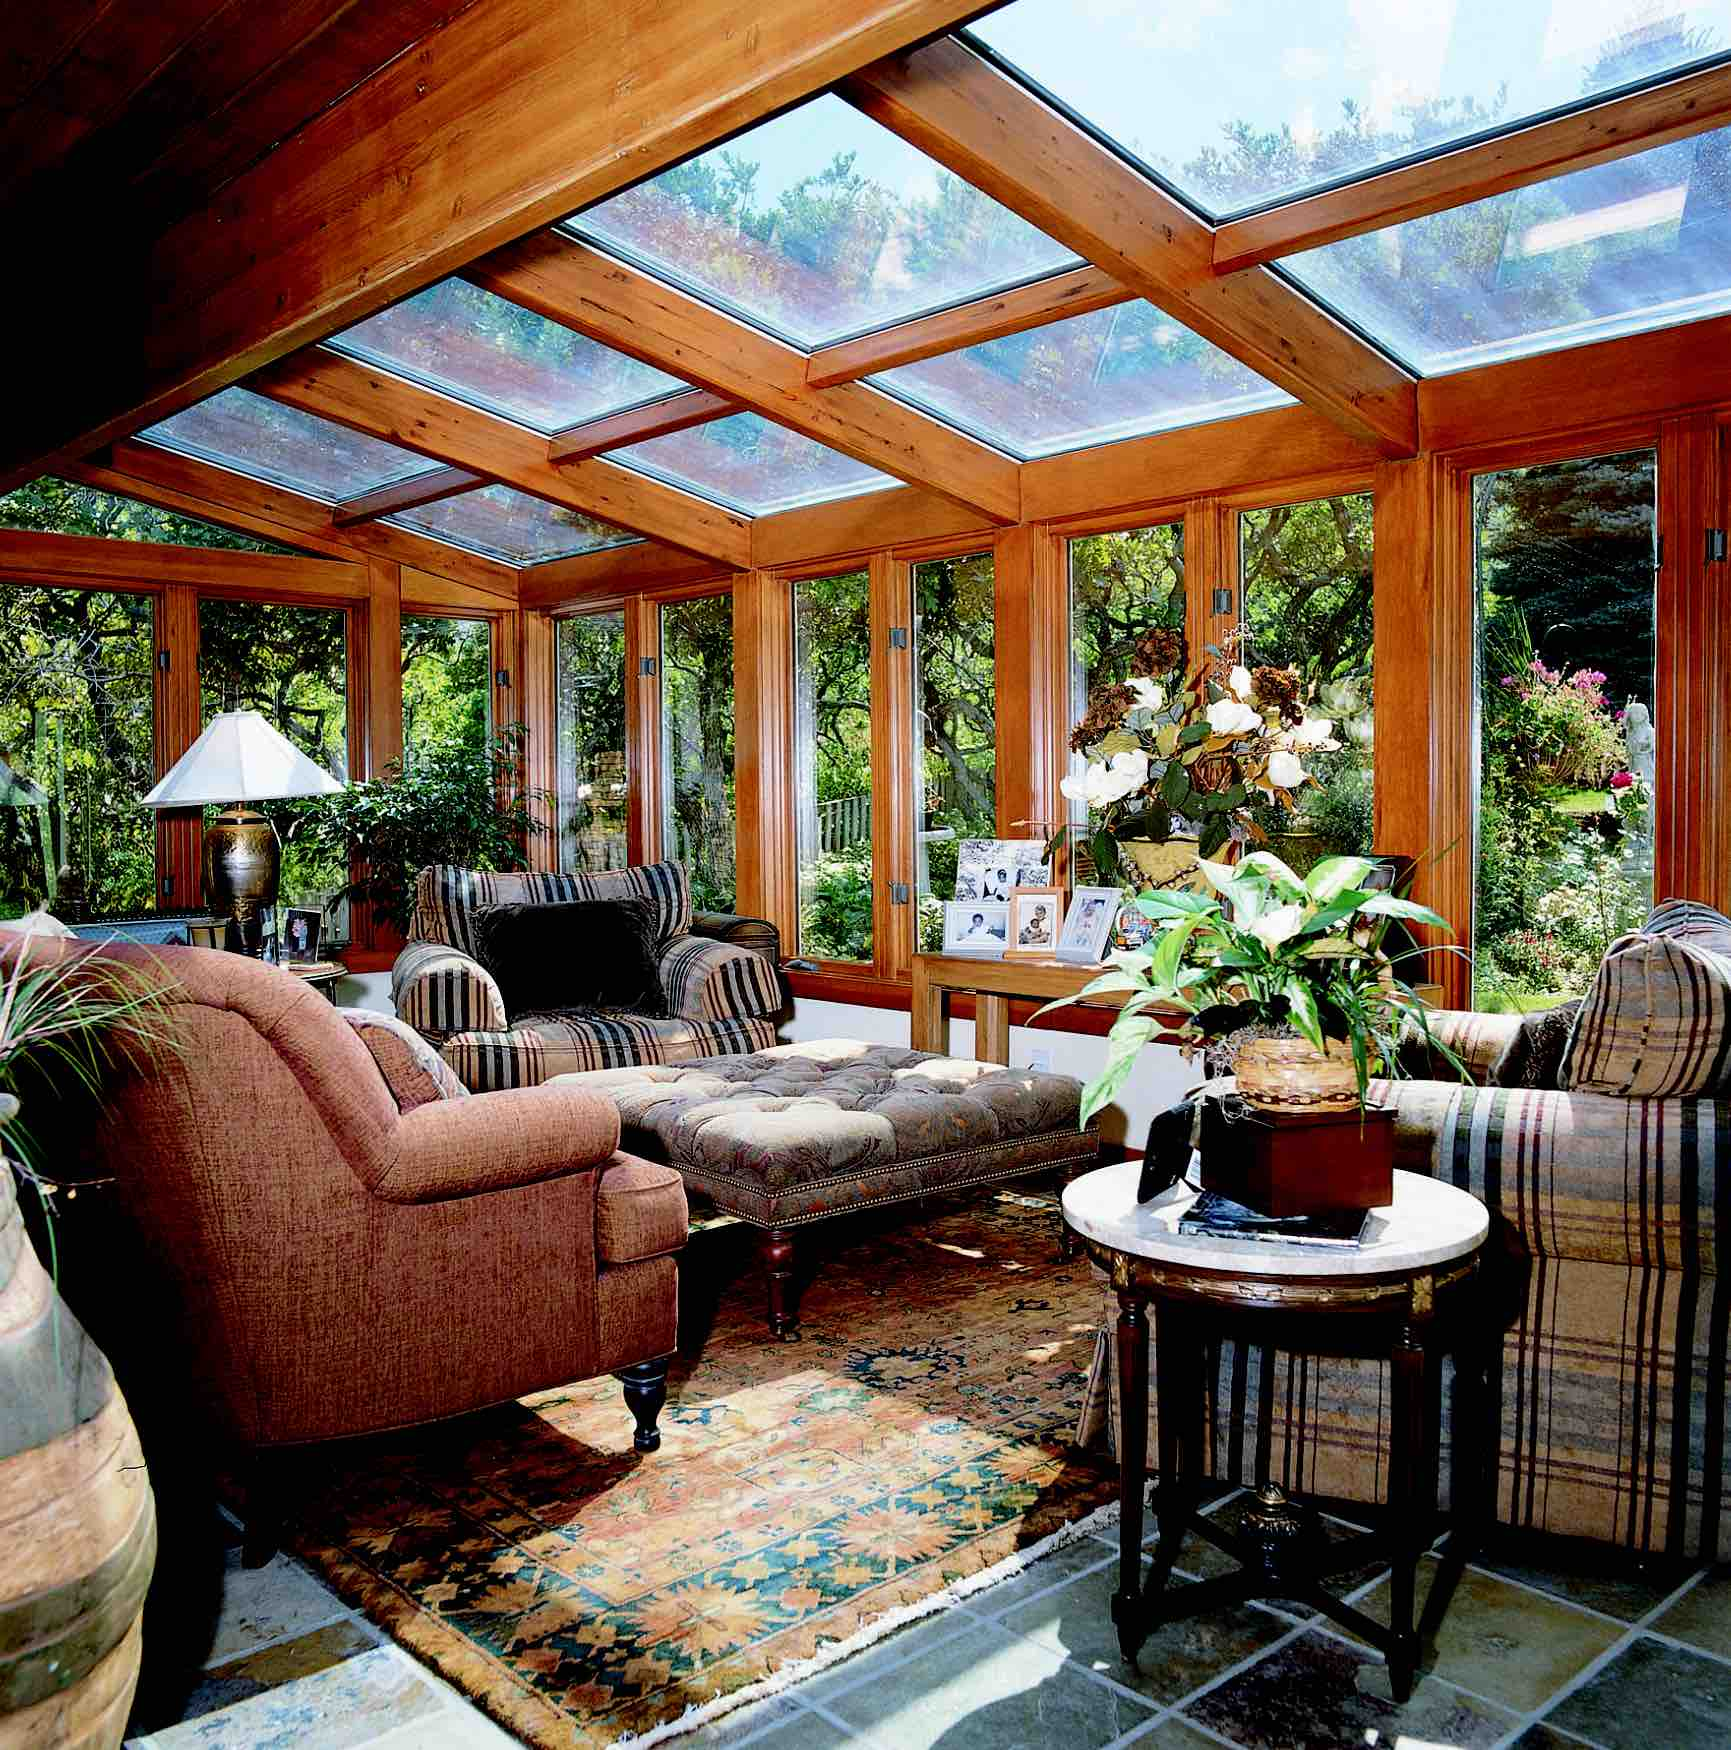 4 Seasons Sunrooms 3